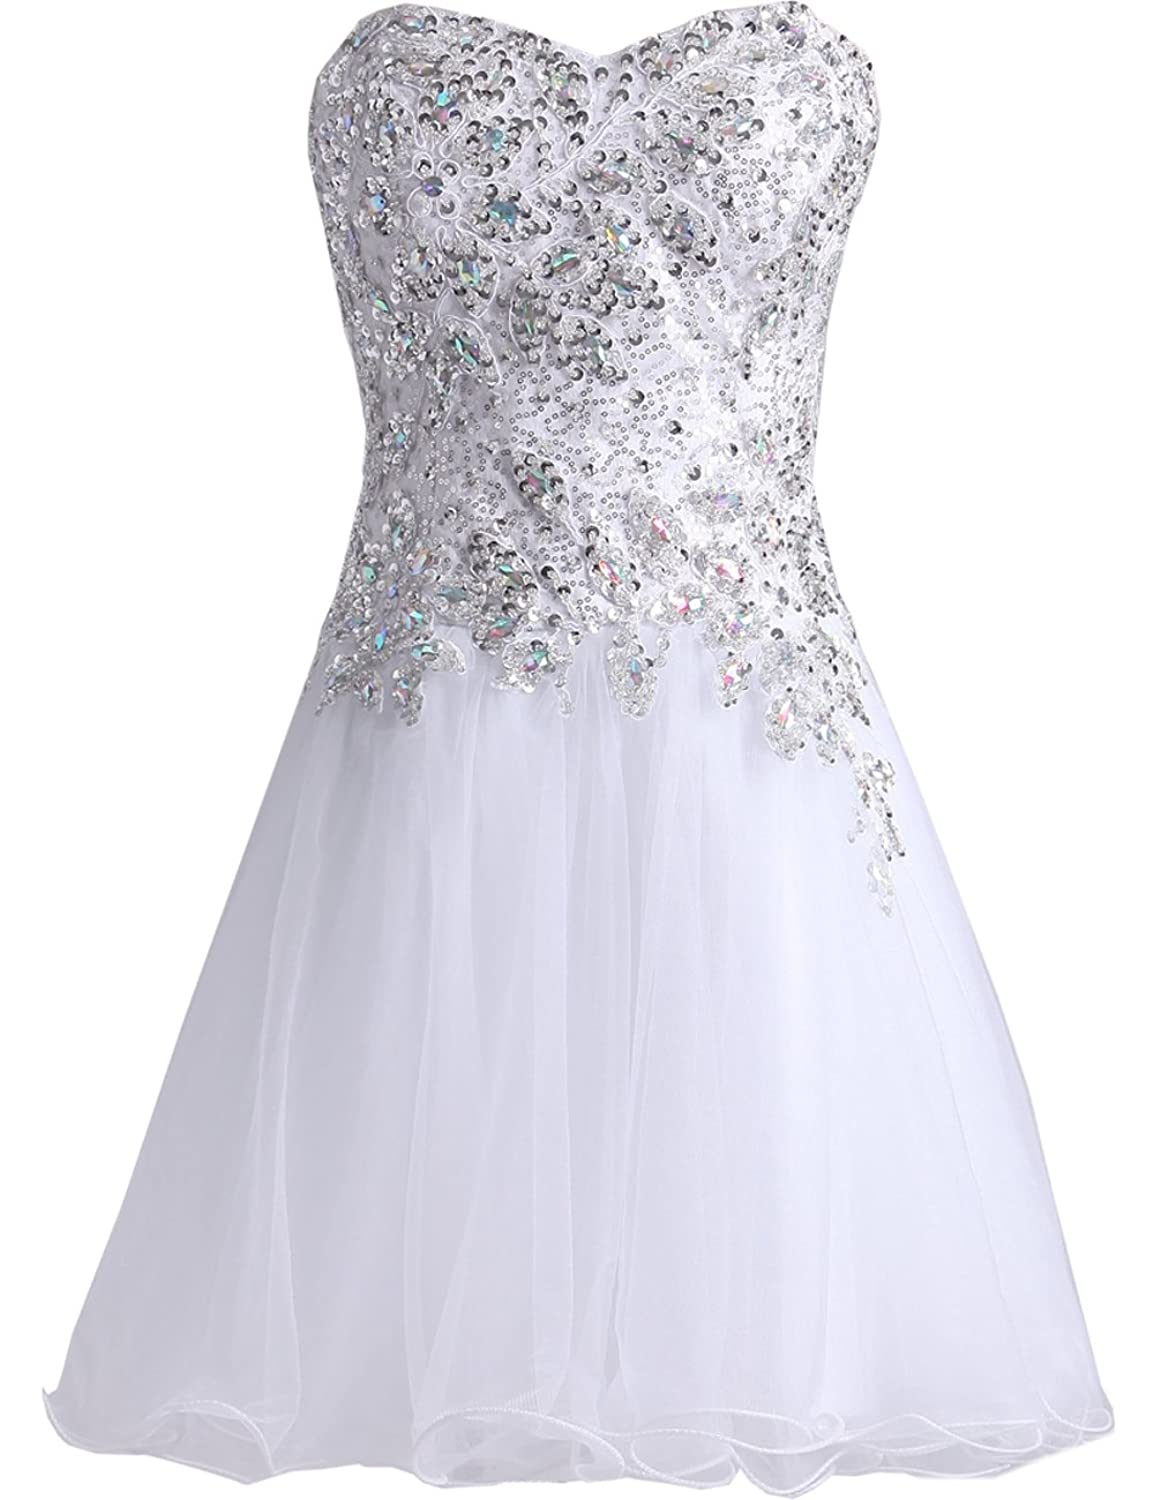 XFCastle Sequins White Short Homecoming Dresses